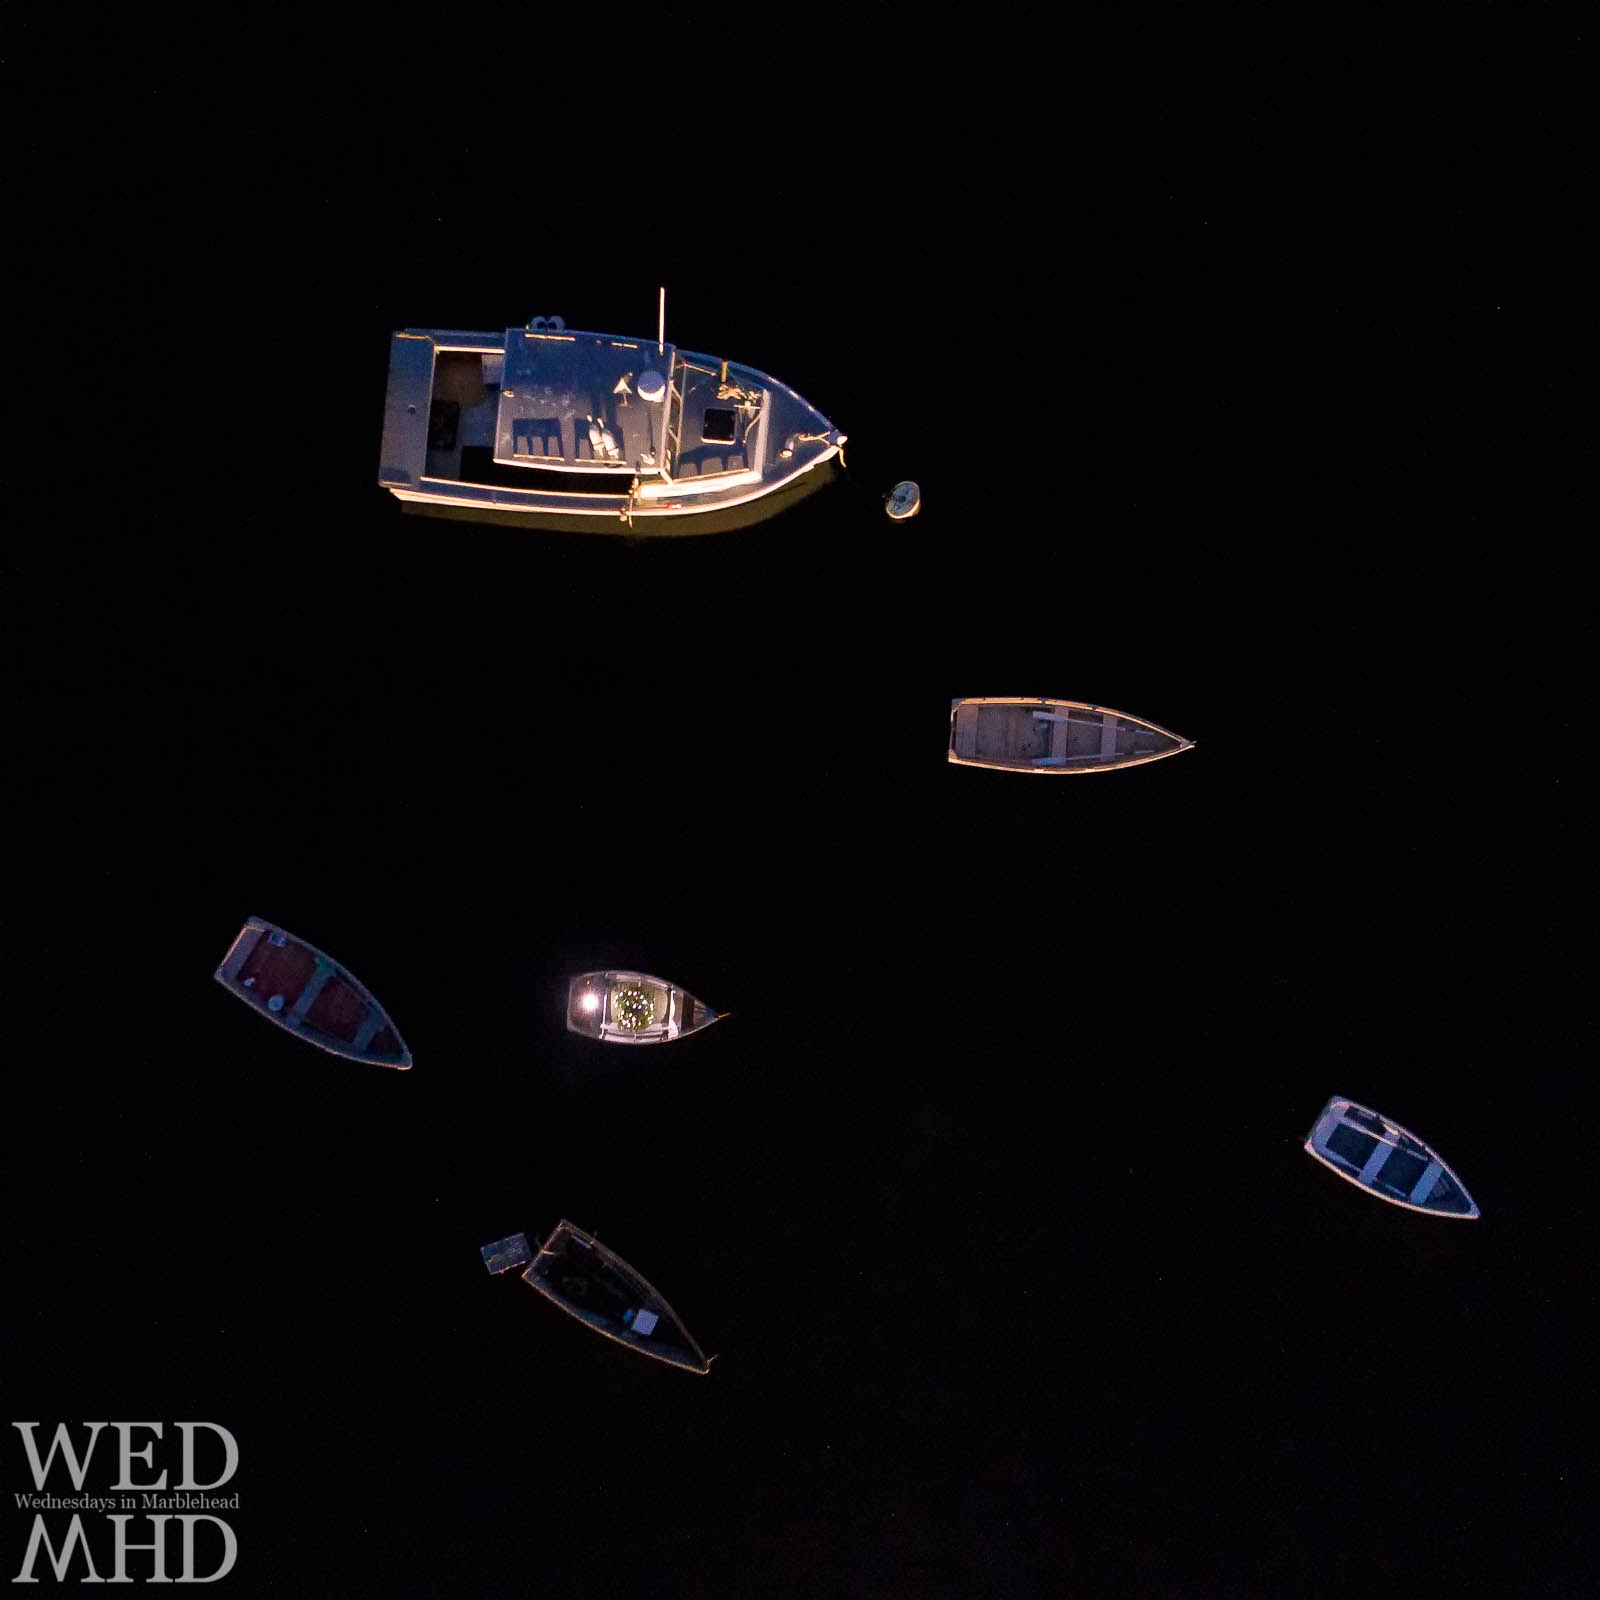 Boats including one holding a Christmas tree are captured from above floating in darkness in the waters of First Harbor